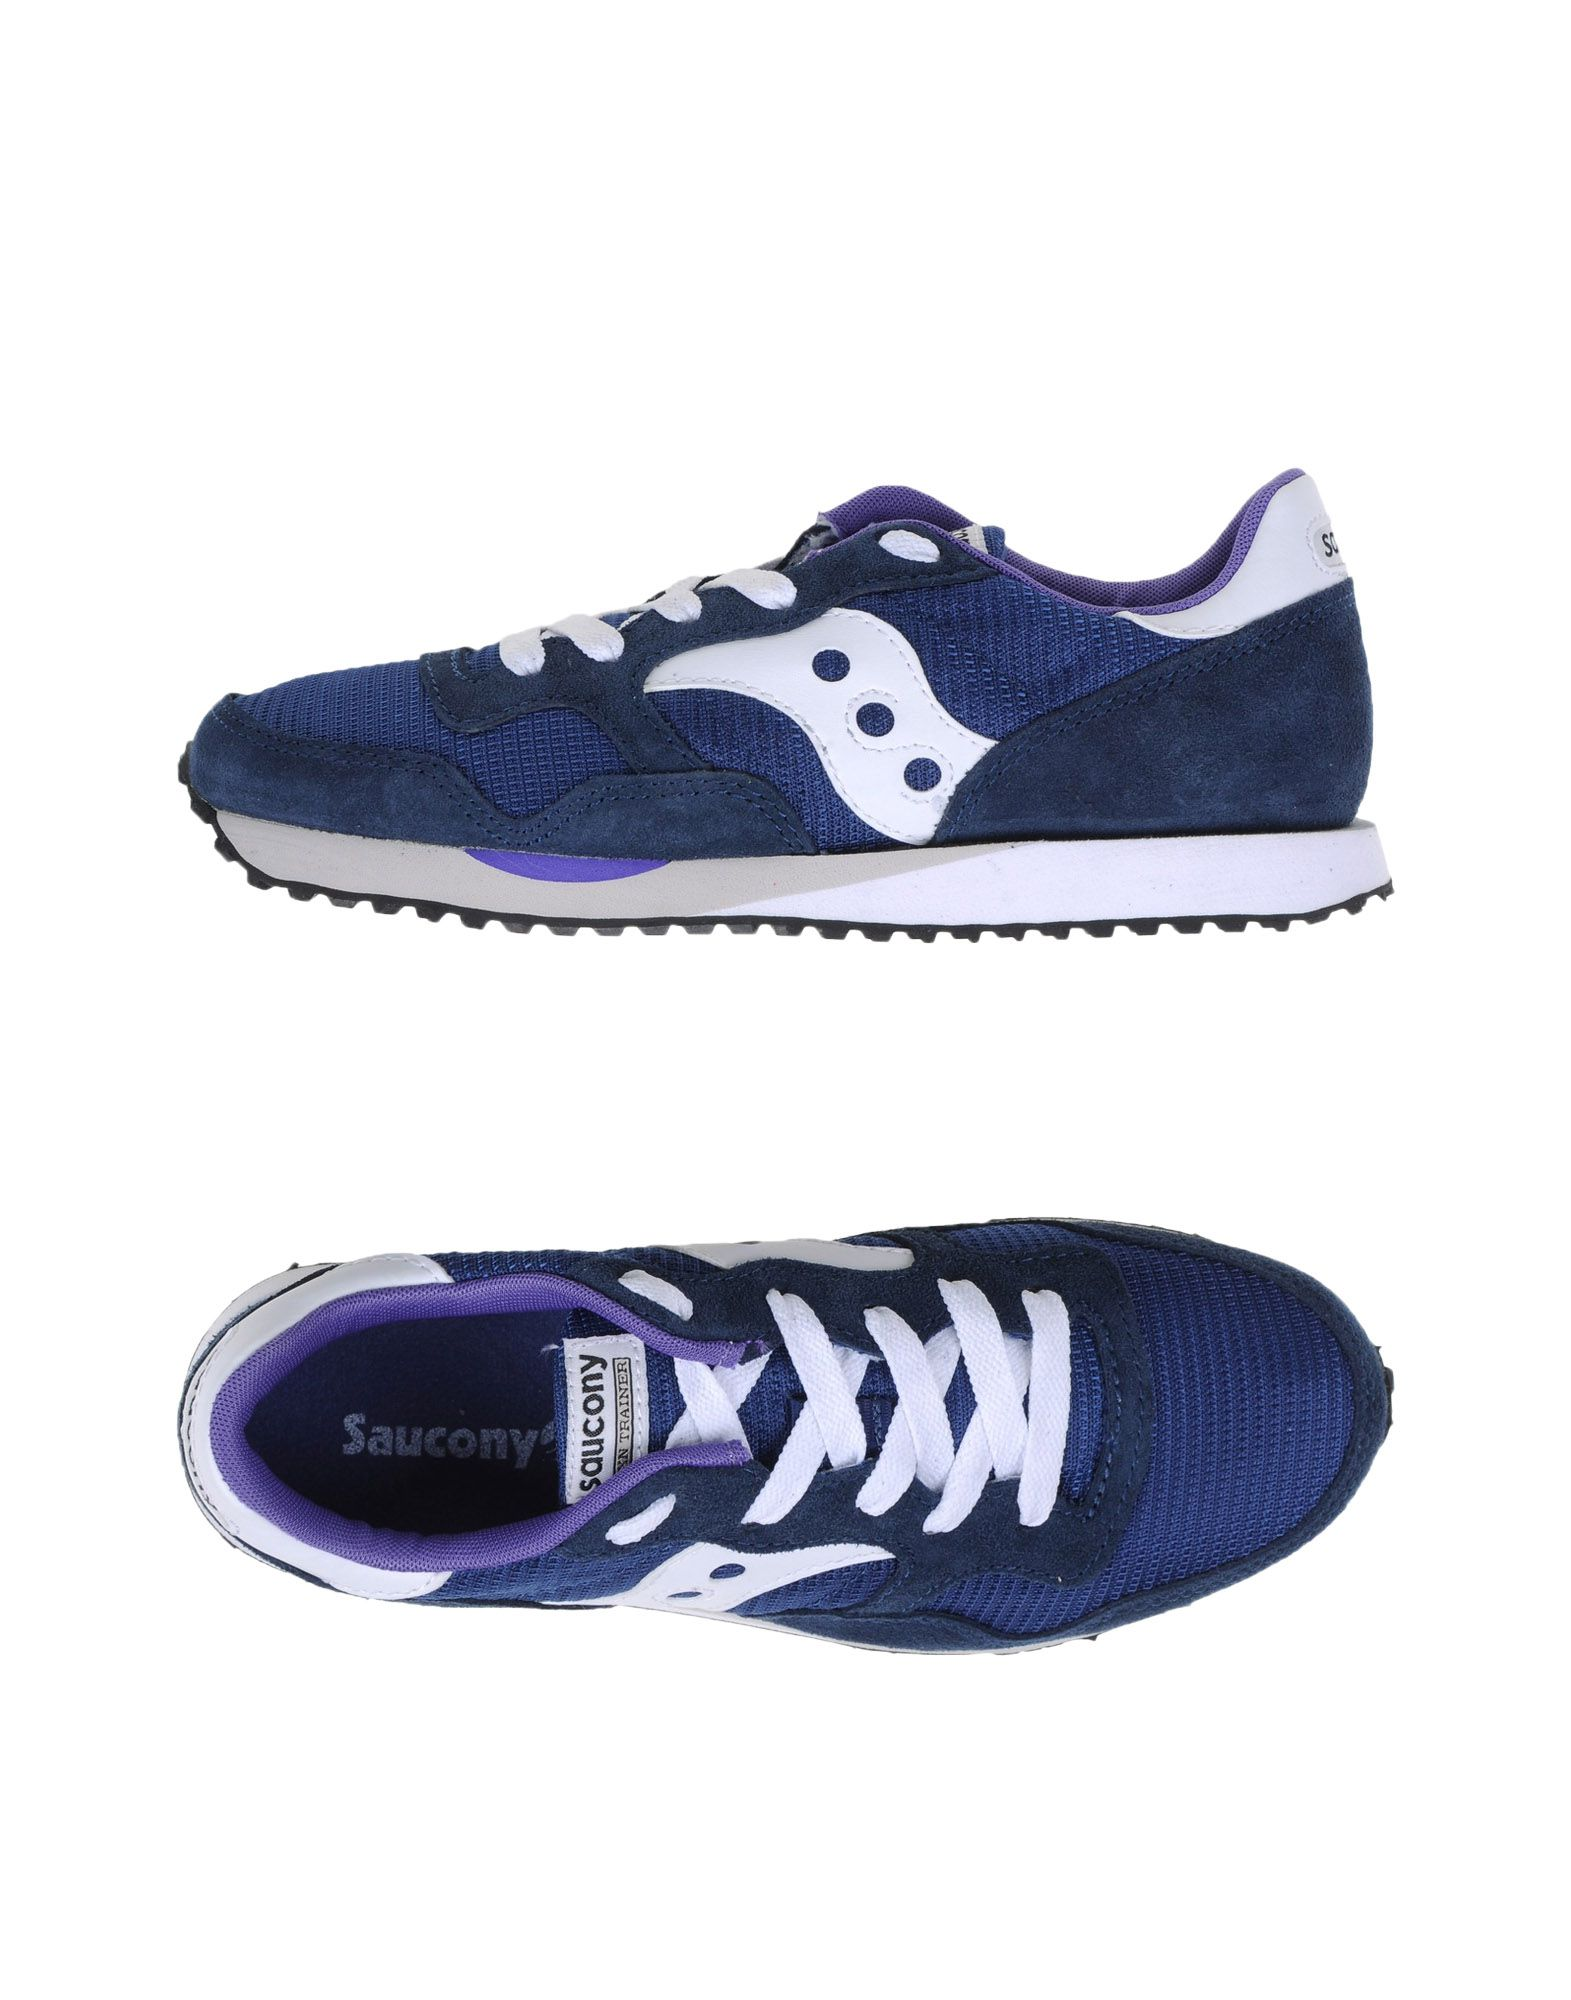 Sneakers Saucony Dxn Trainer W - Femme - Sneakers Saucony sur